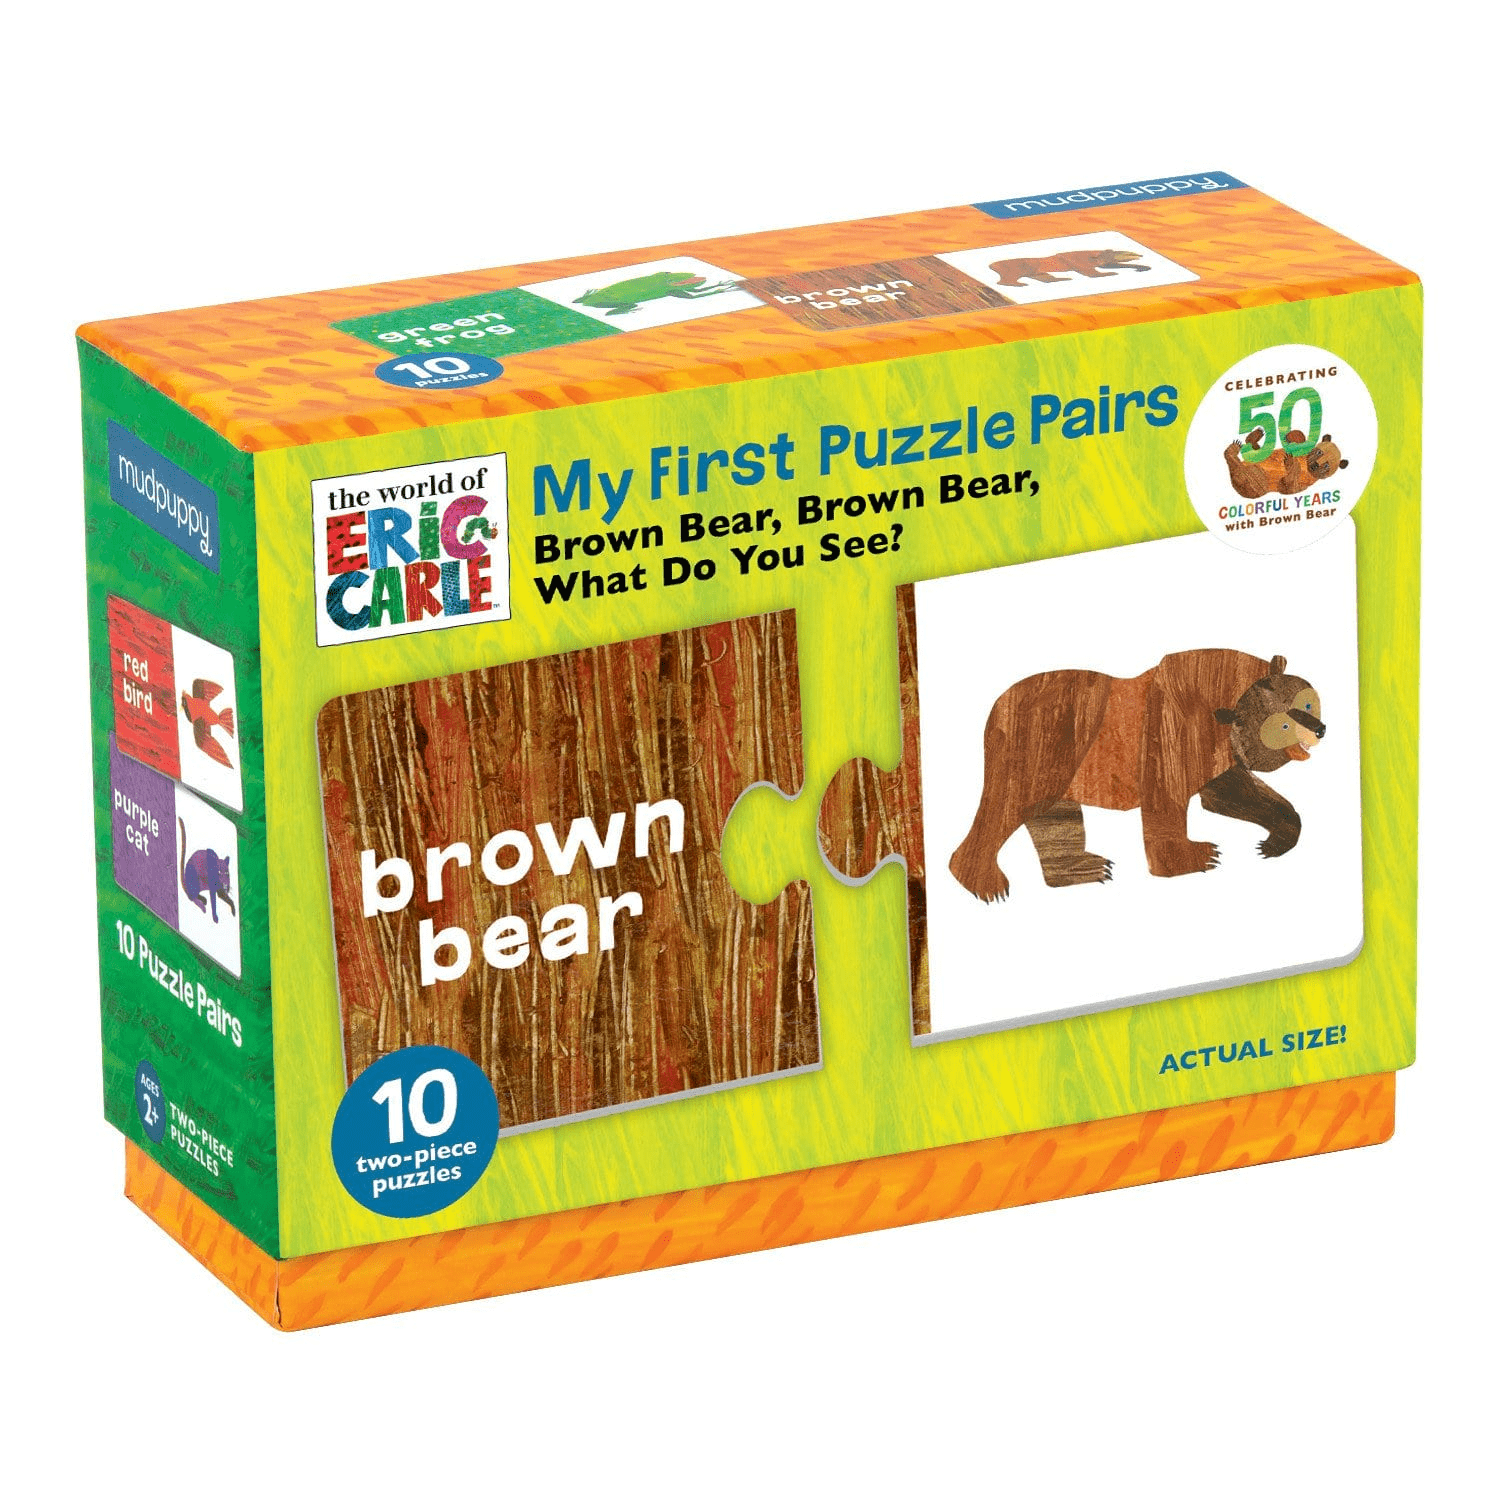 The World of Eric Carle - Brown Bear, Brown Bear, What do you See? Puzzle Pairs